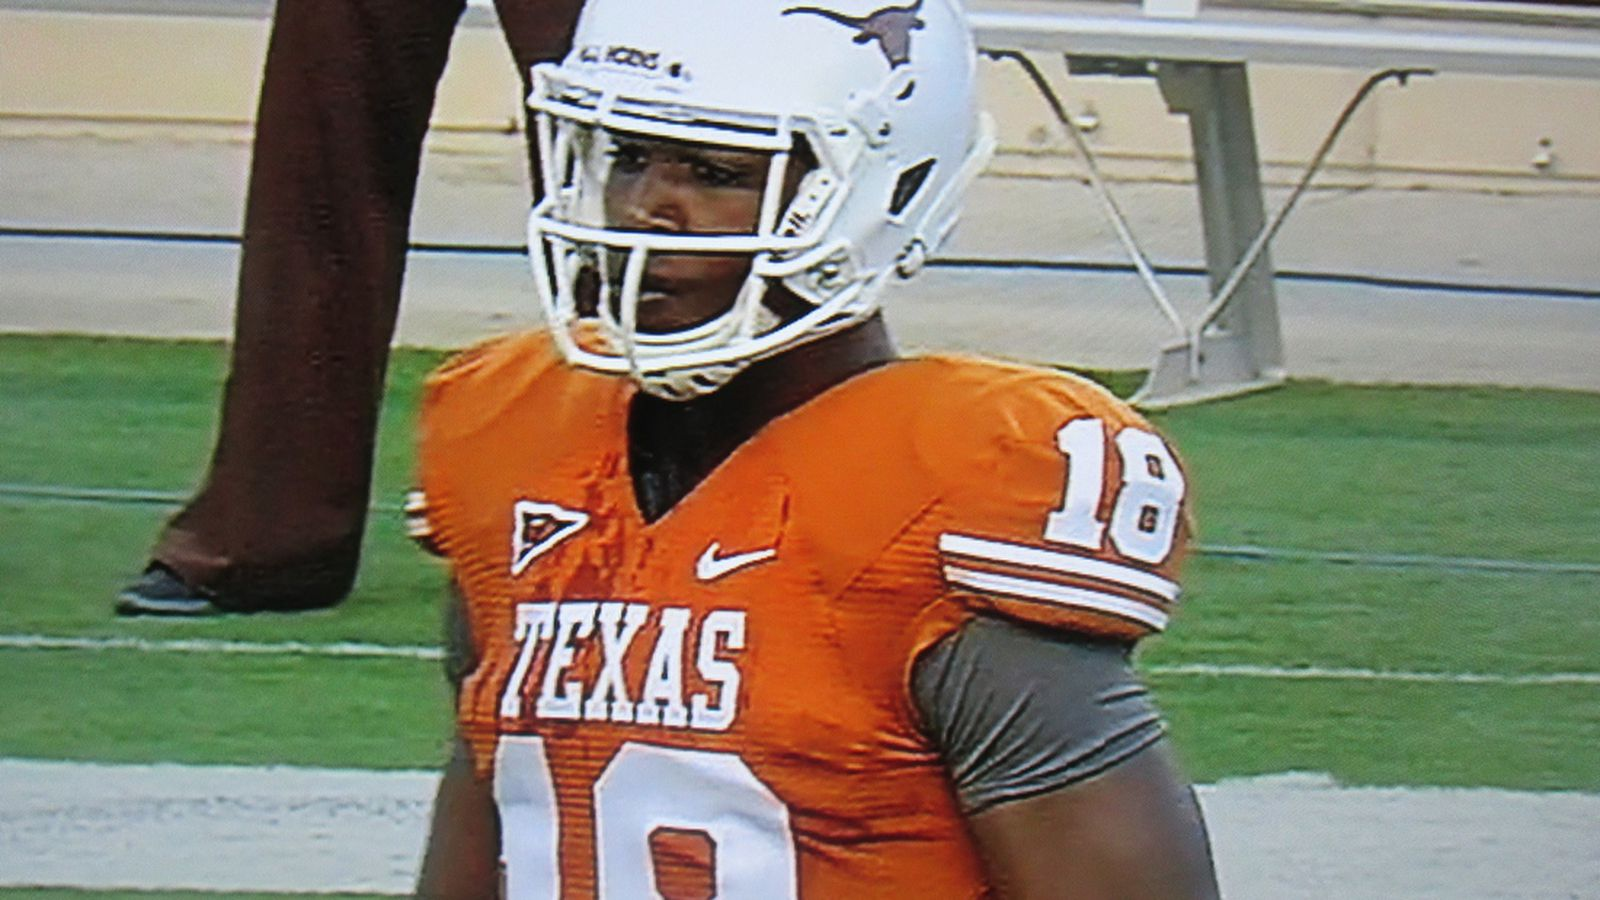 Tyrone_swoopes_spring_game_screen.0